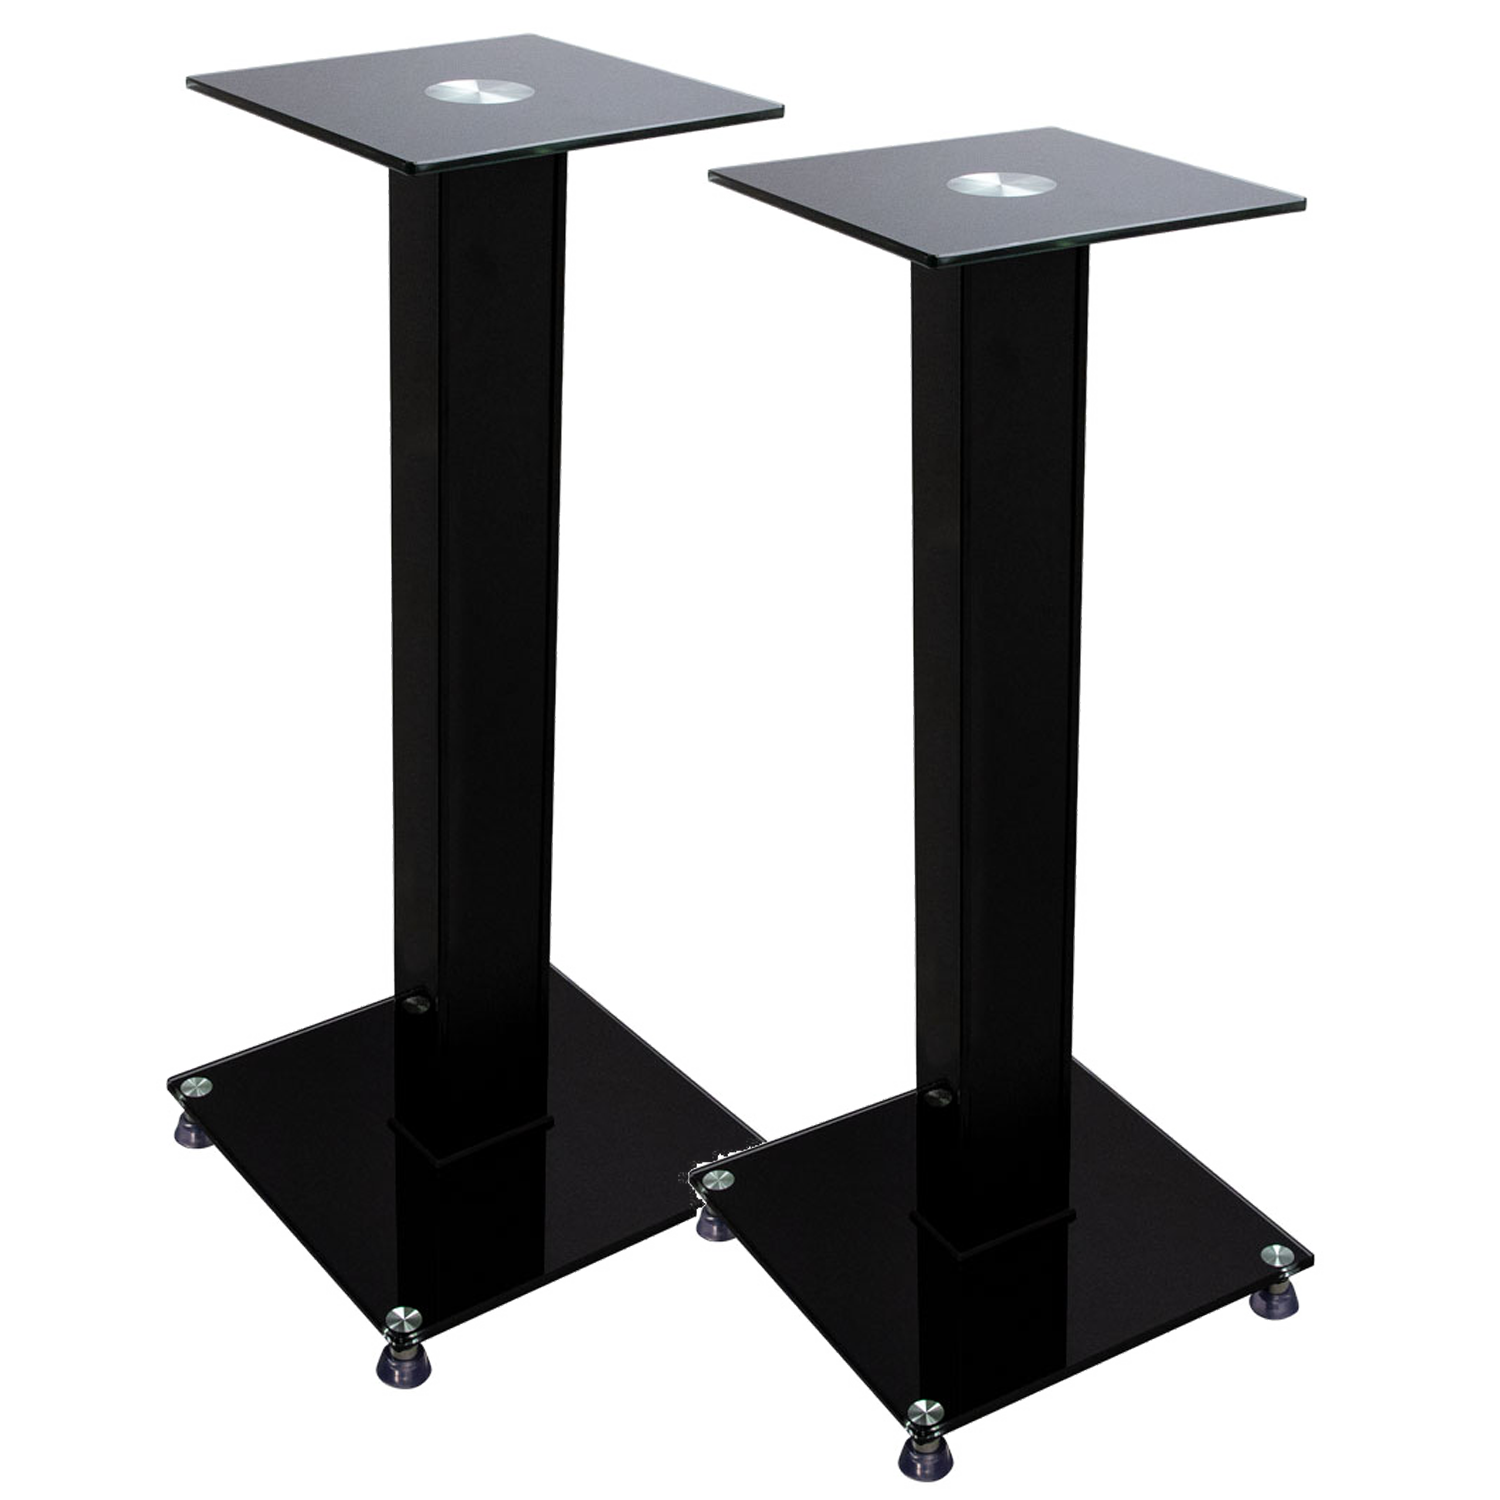 Ethereal Helios As Spkr 5 Glass And Wood Bookshelf Speaker Stand Pair